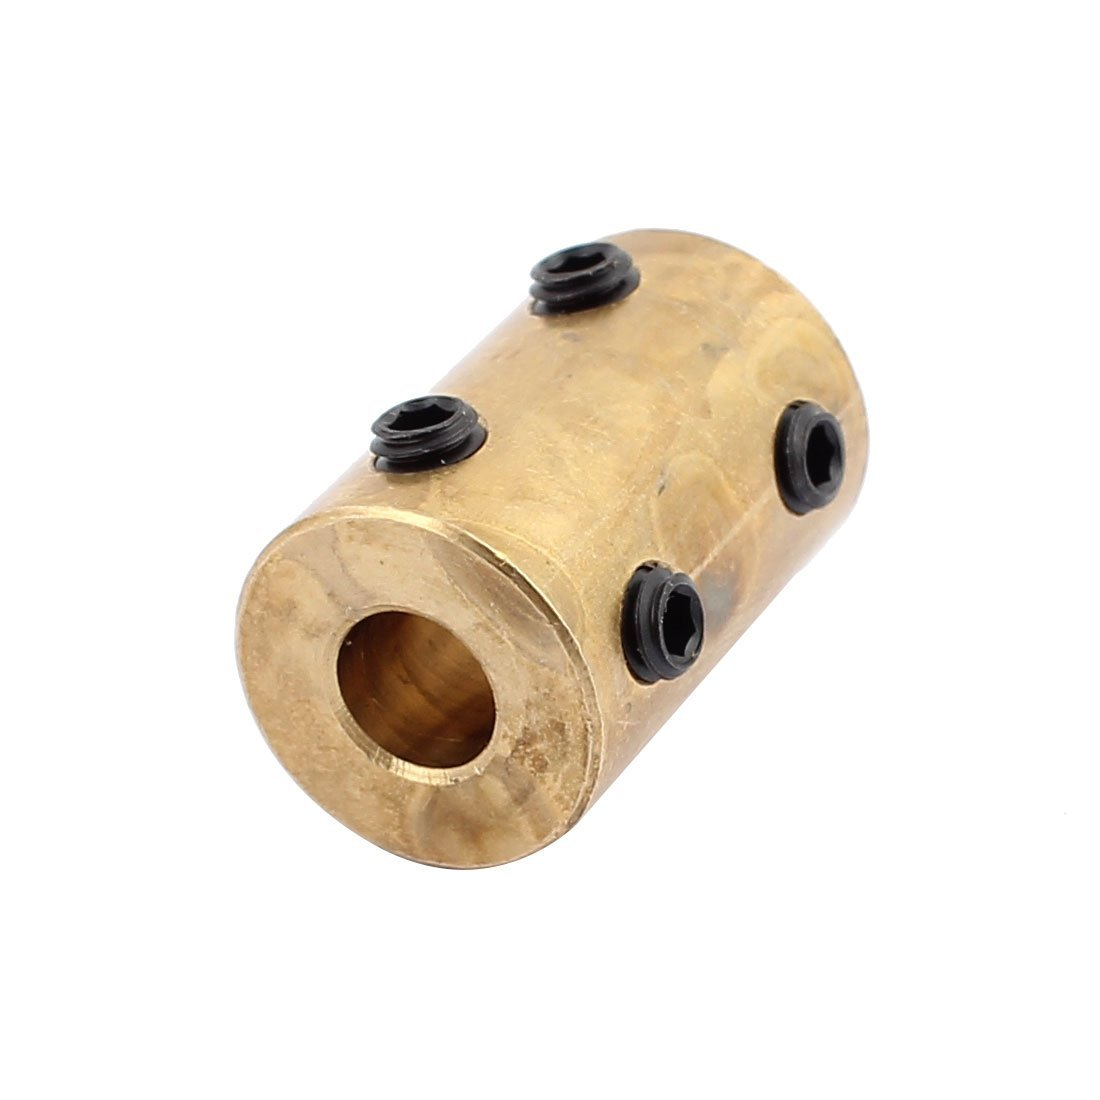 6mm to 8mm Brass Robot Motor Wheel Coupling Coupler with Tight Screws